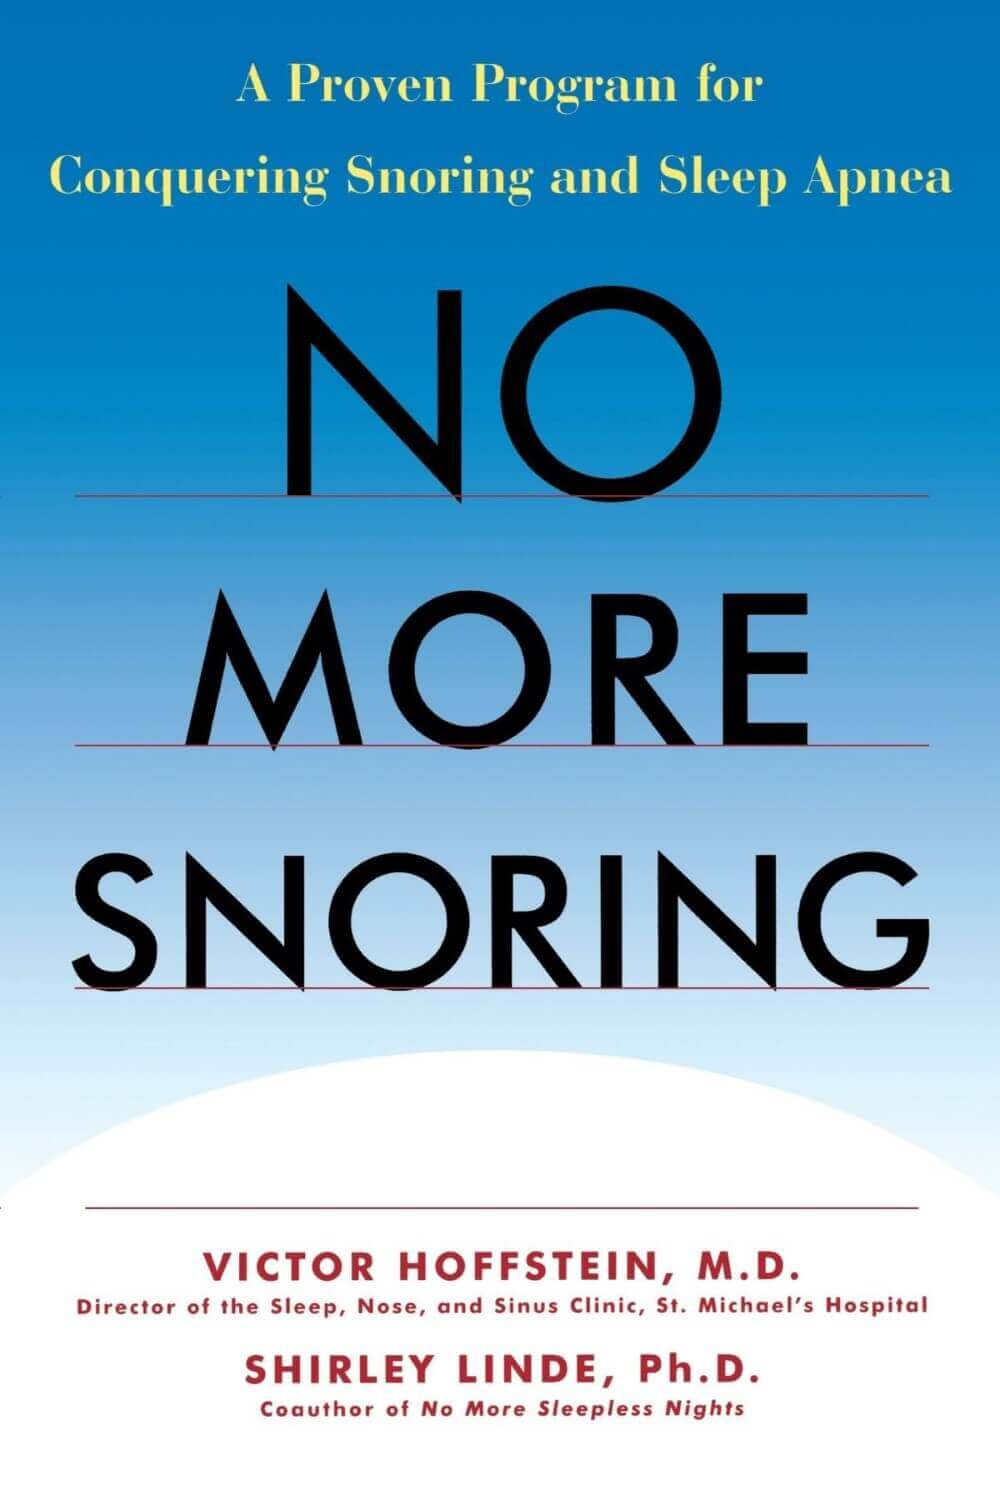 no more snoring words